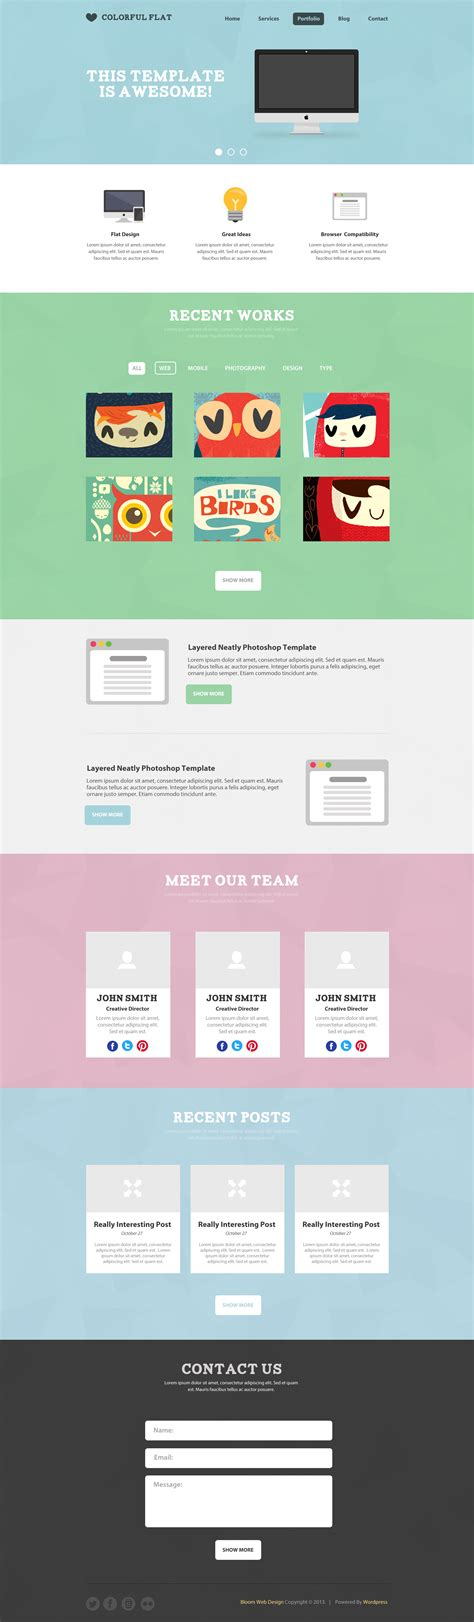 free one page website template free flat one page website psd template free psd